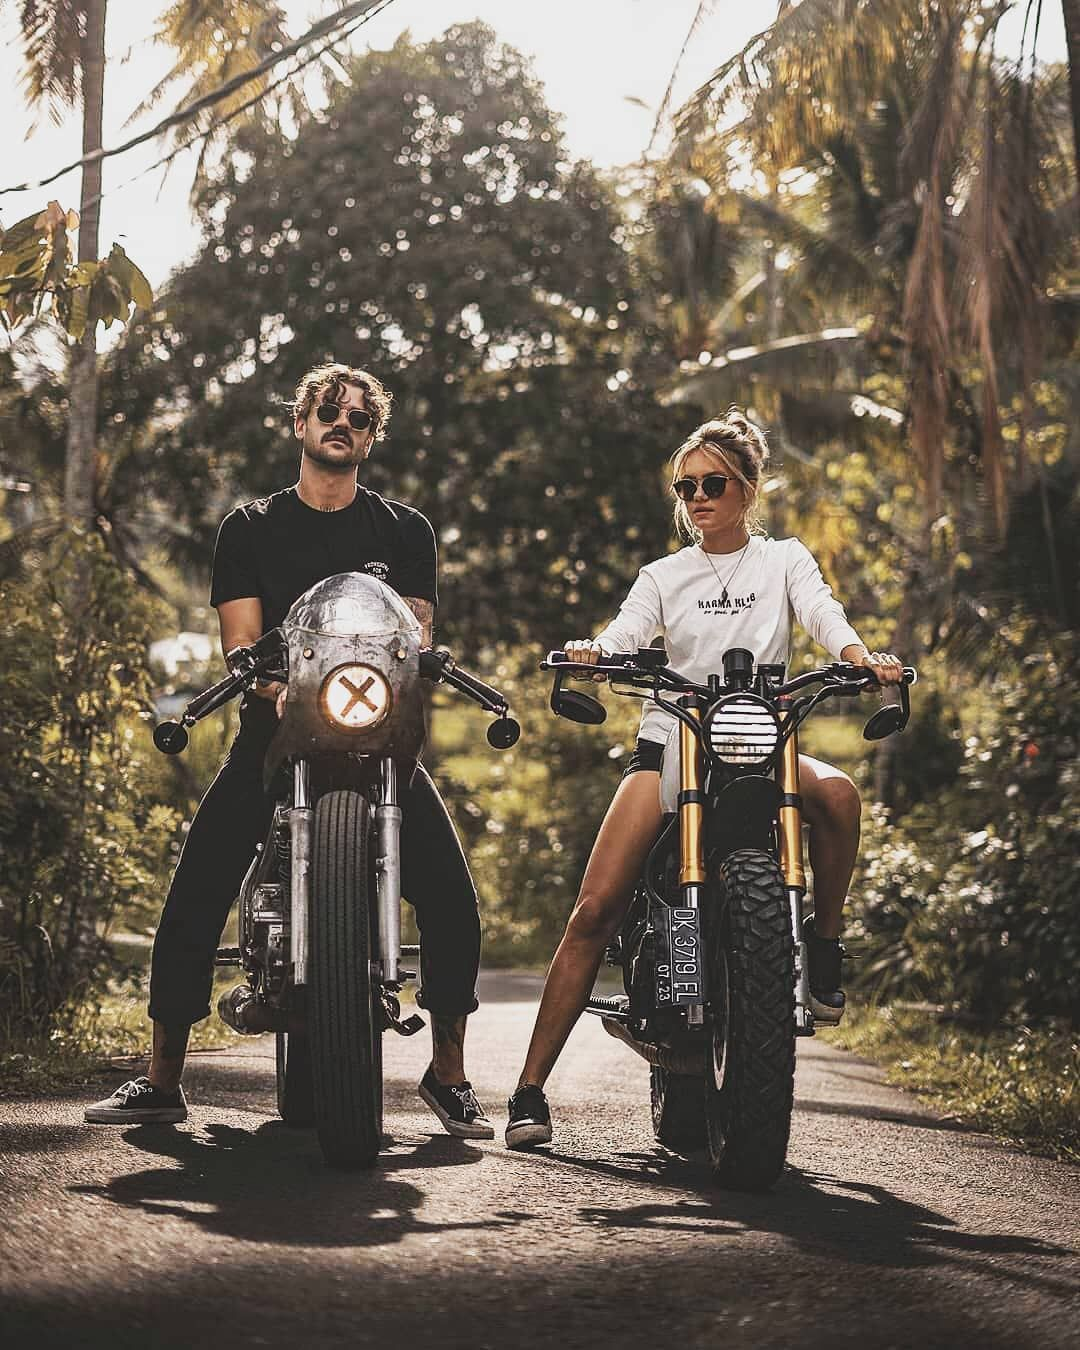 Pin By Roger Mulderink On Me And My Wife Bike Couple Couple